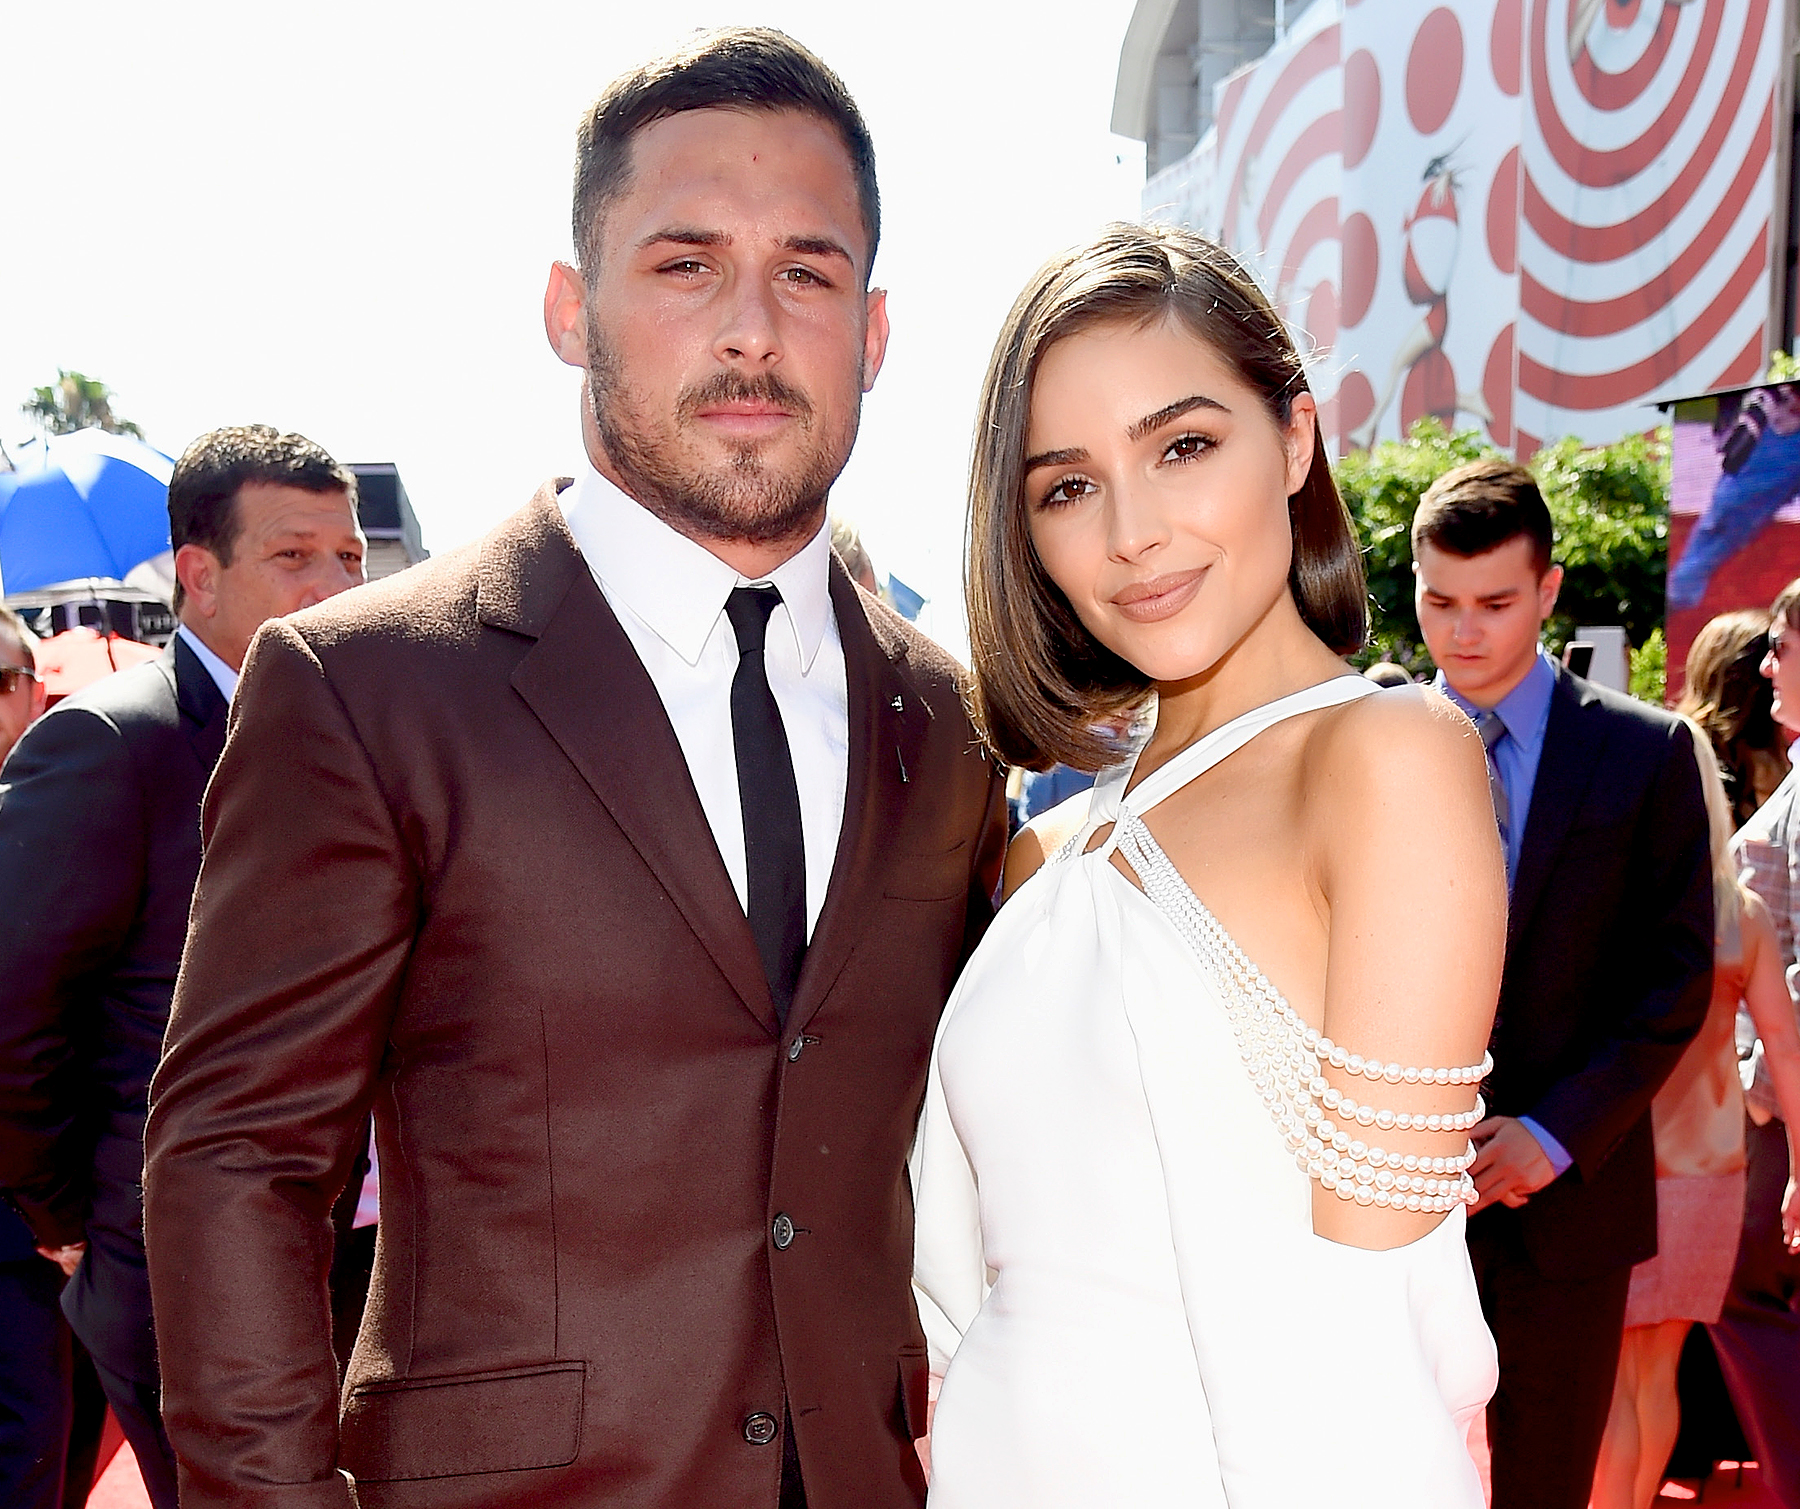 Olivia Culpo isn't ready to talk Danny Amendola 'heartbreak'